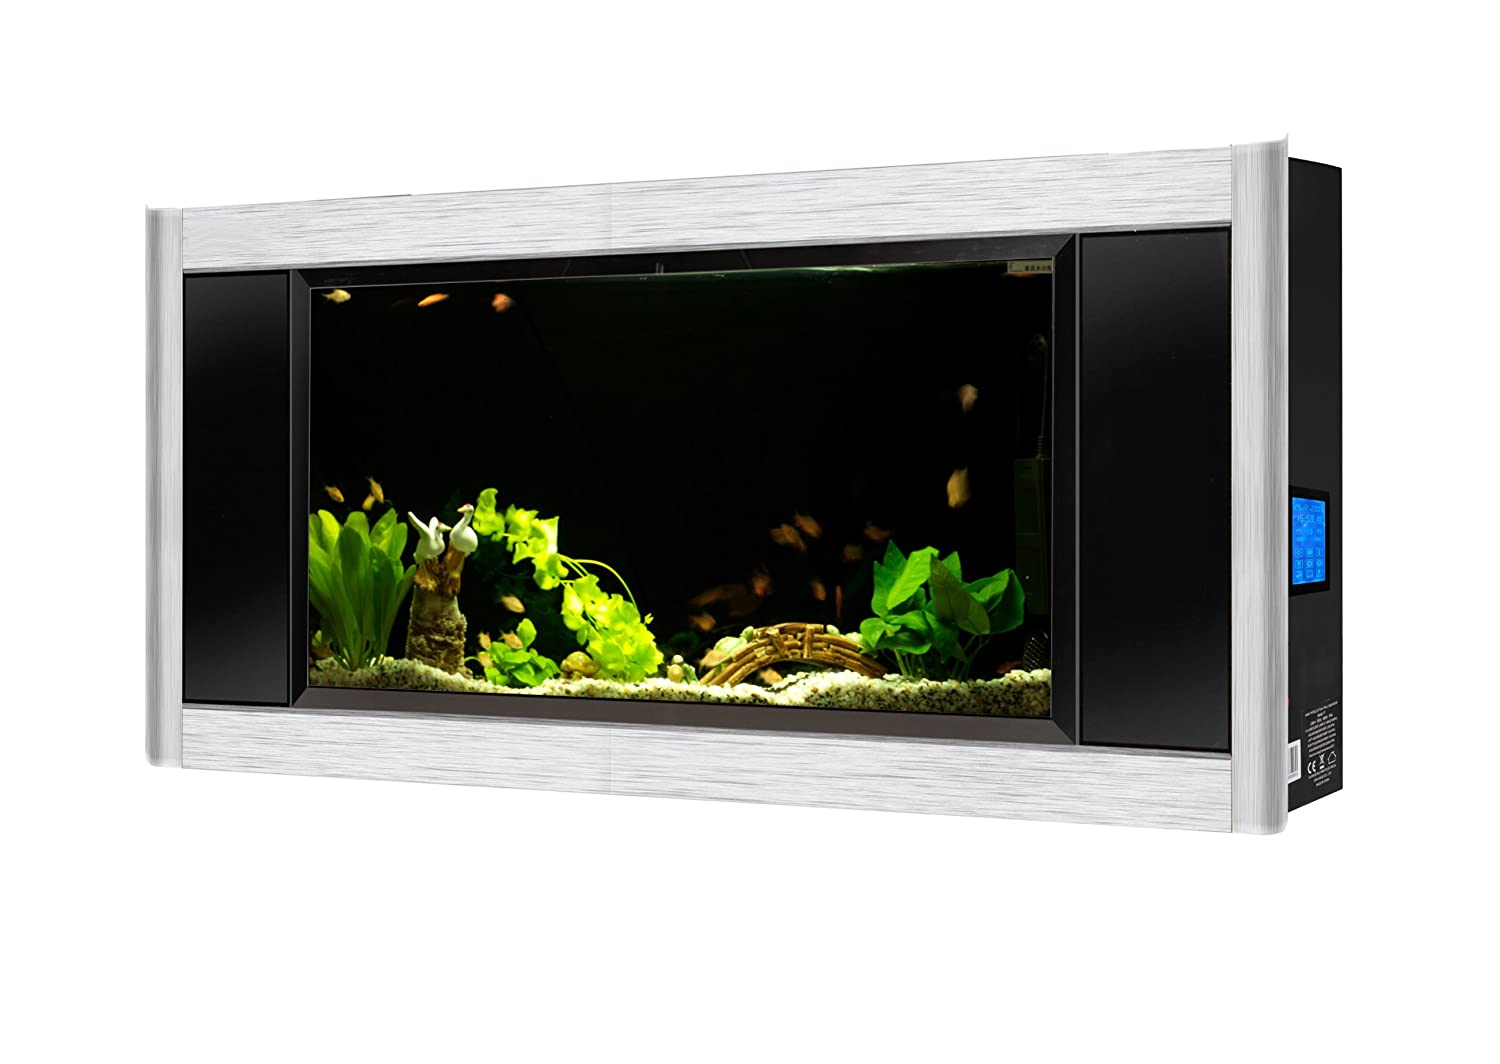 Amazon aquavista panoramic wall aquarium black 6 feet wide amazon aquavista panoramic wall aquarium black 6 feet wide pet supplies jeuxipadfo Images